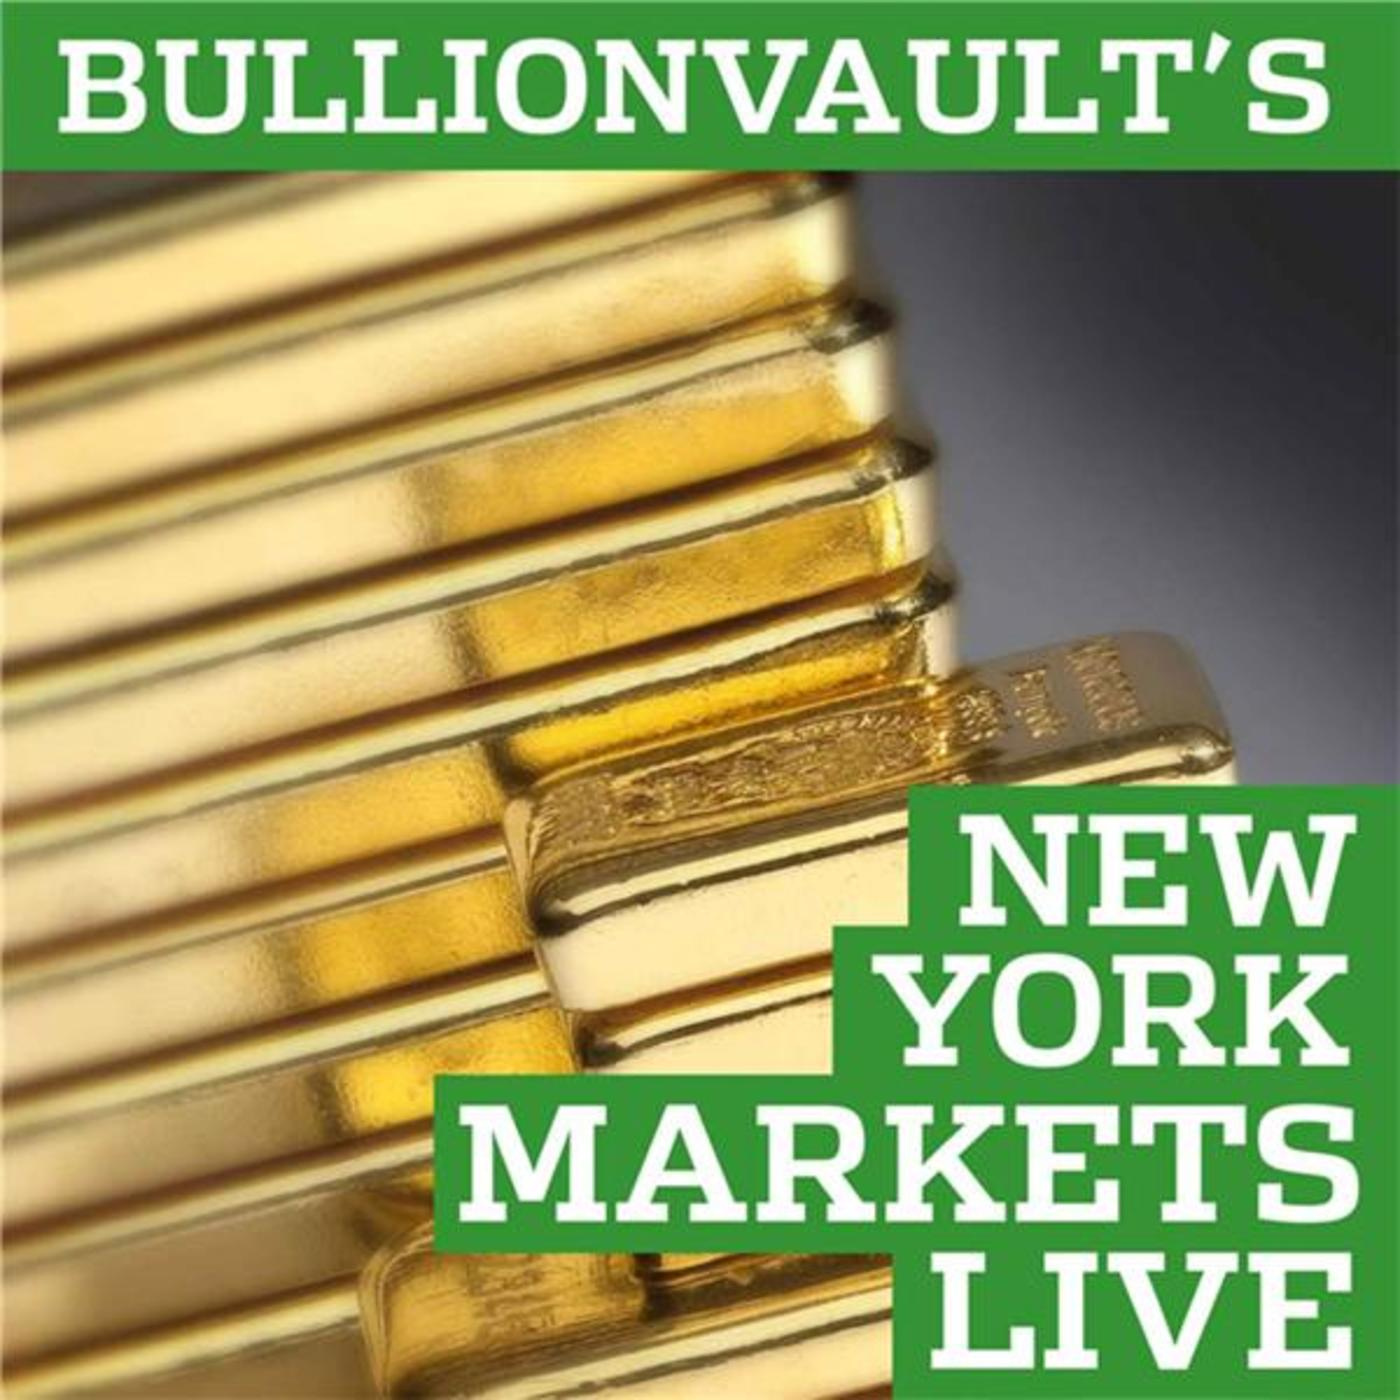 BullionVault's New York Markets Live